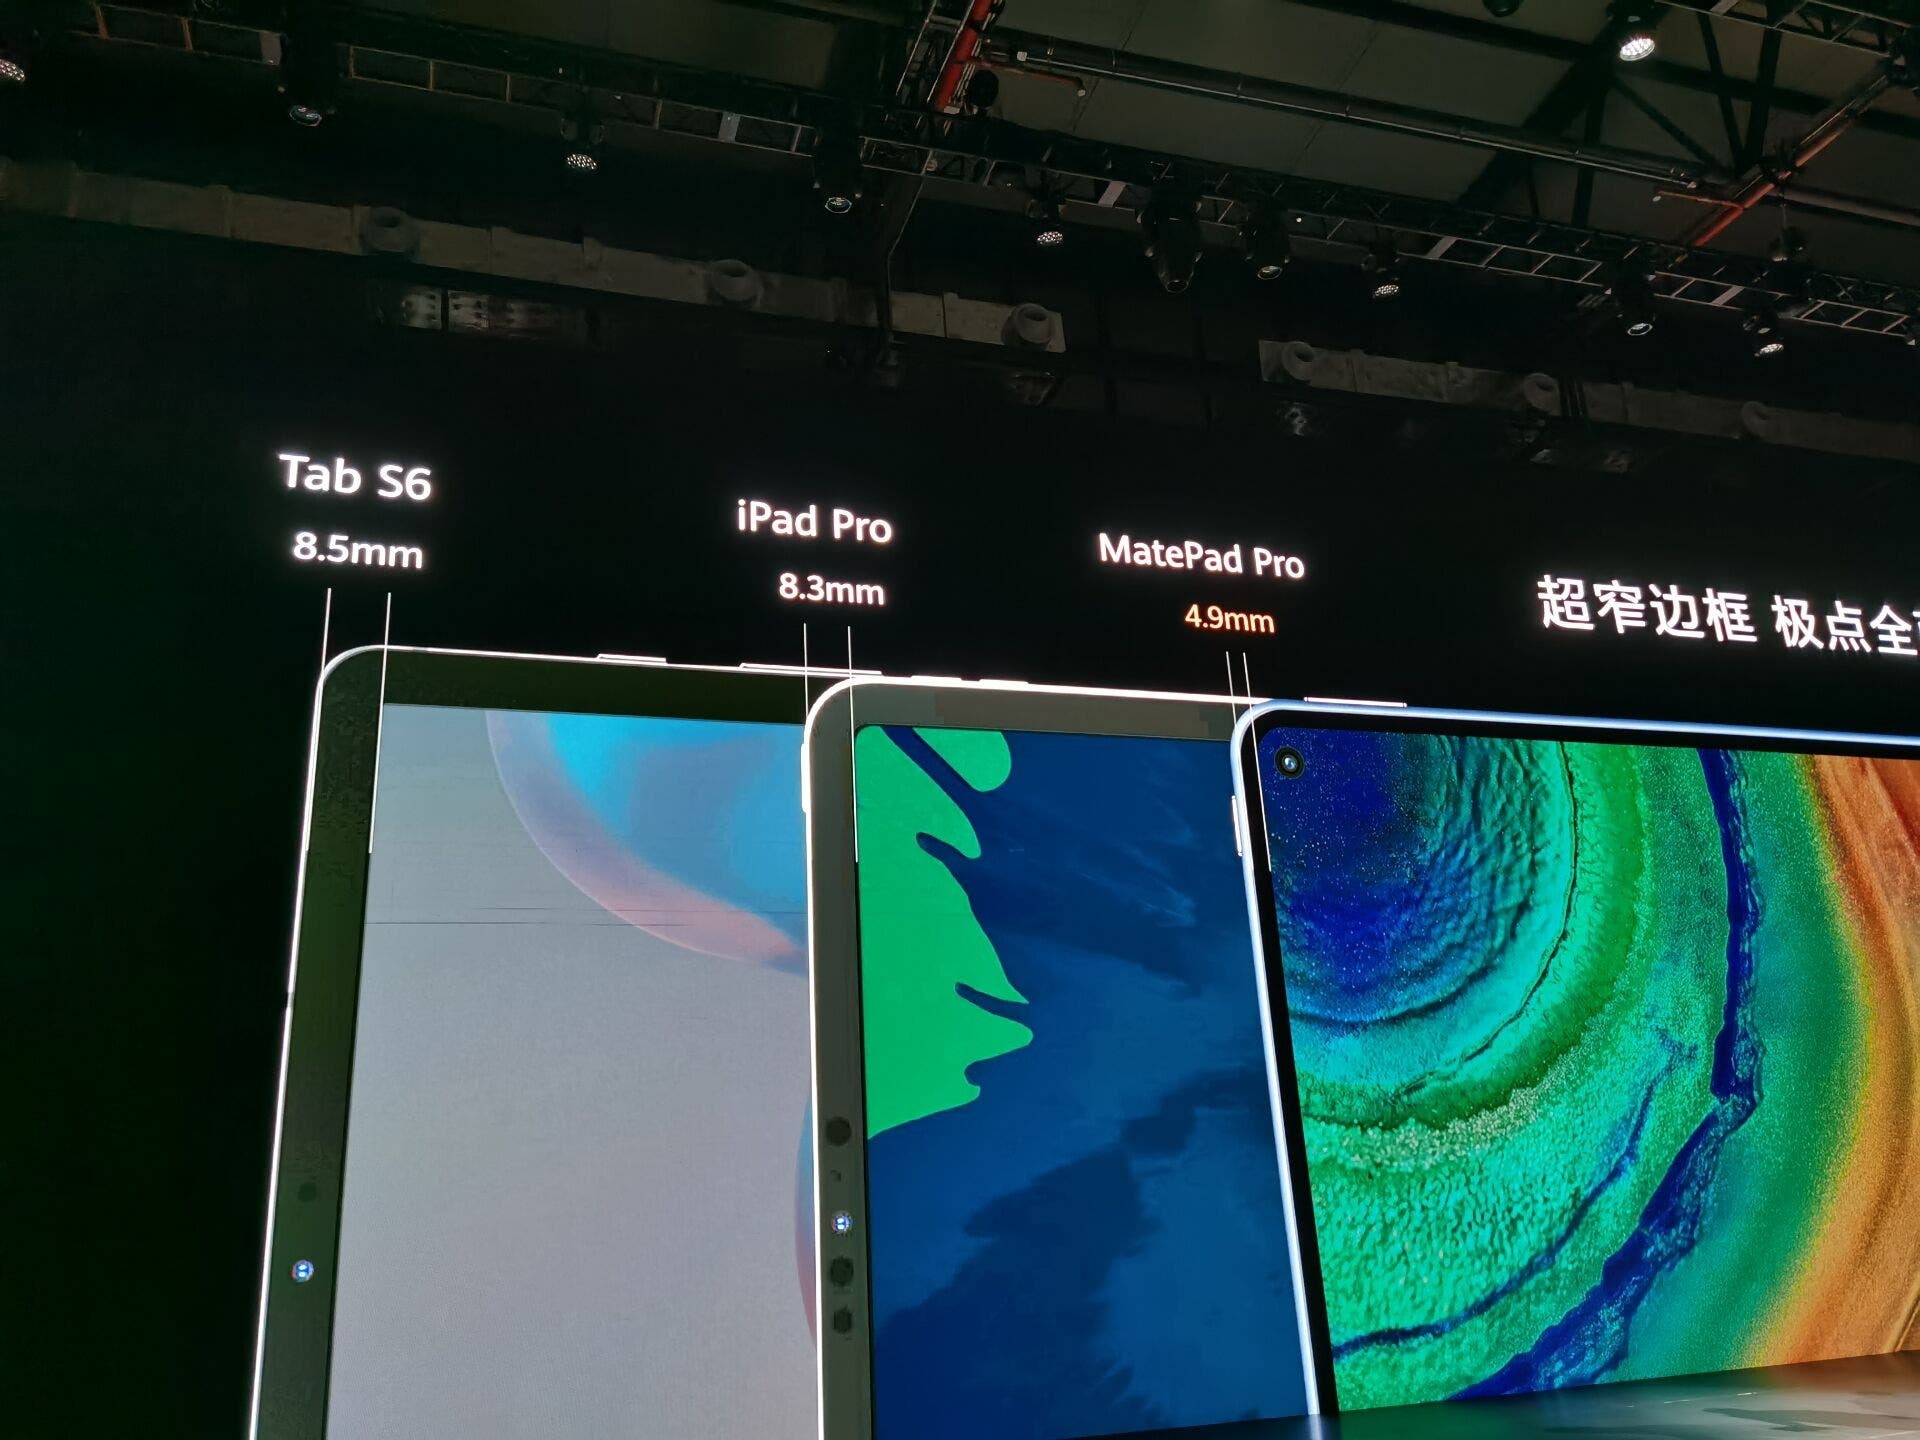 Huawei launched the MatePad Pro in China